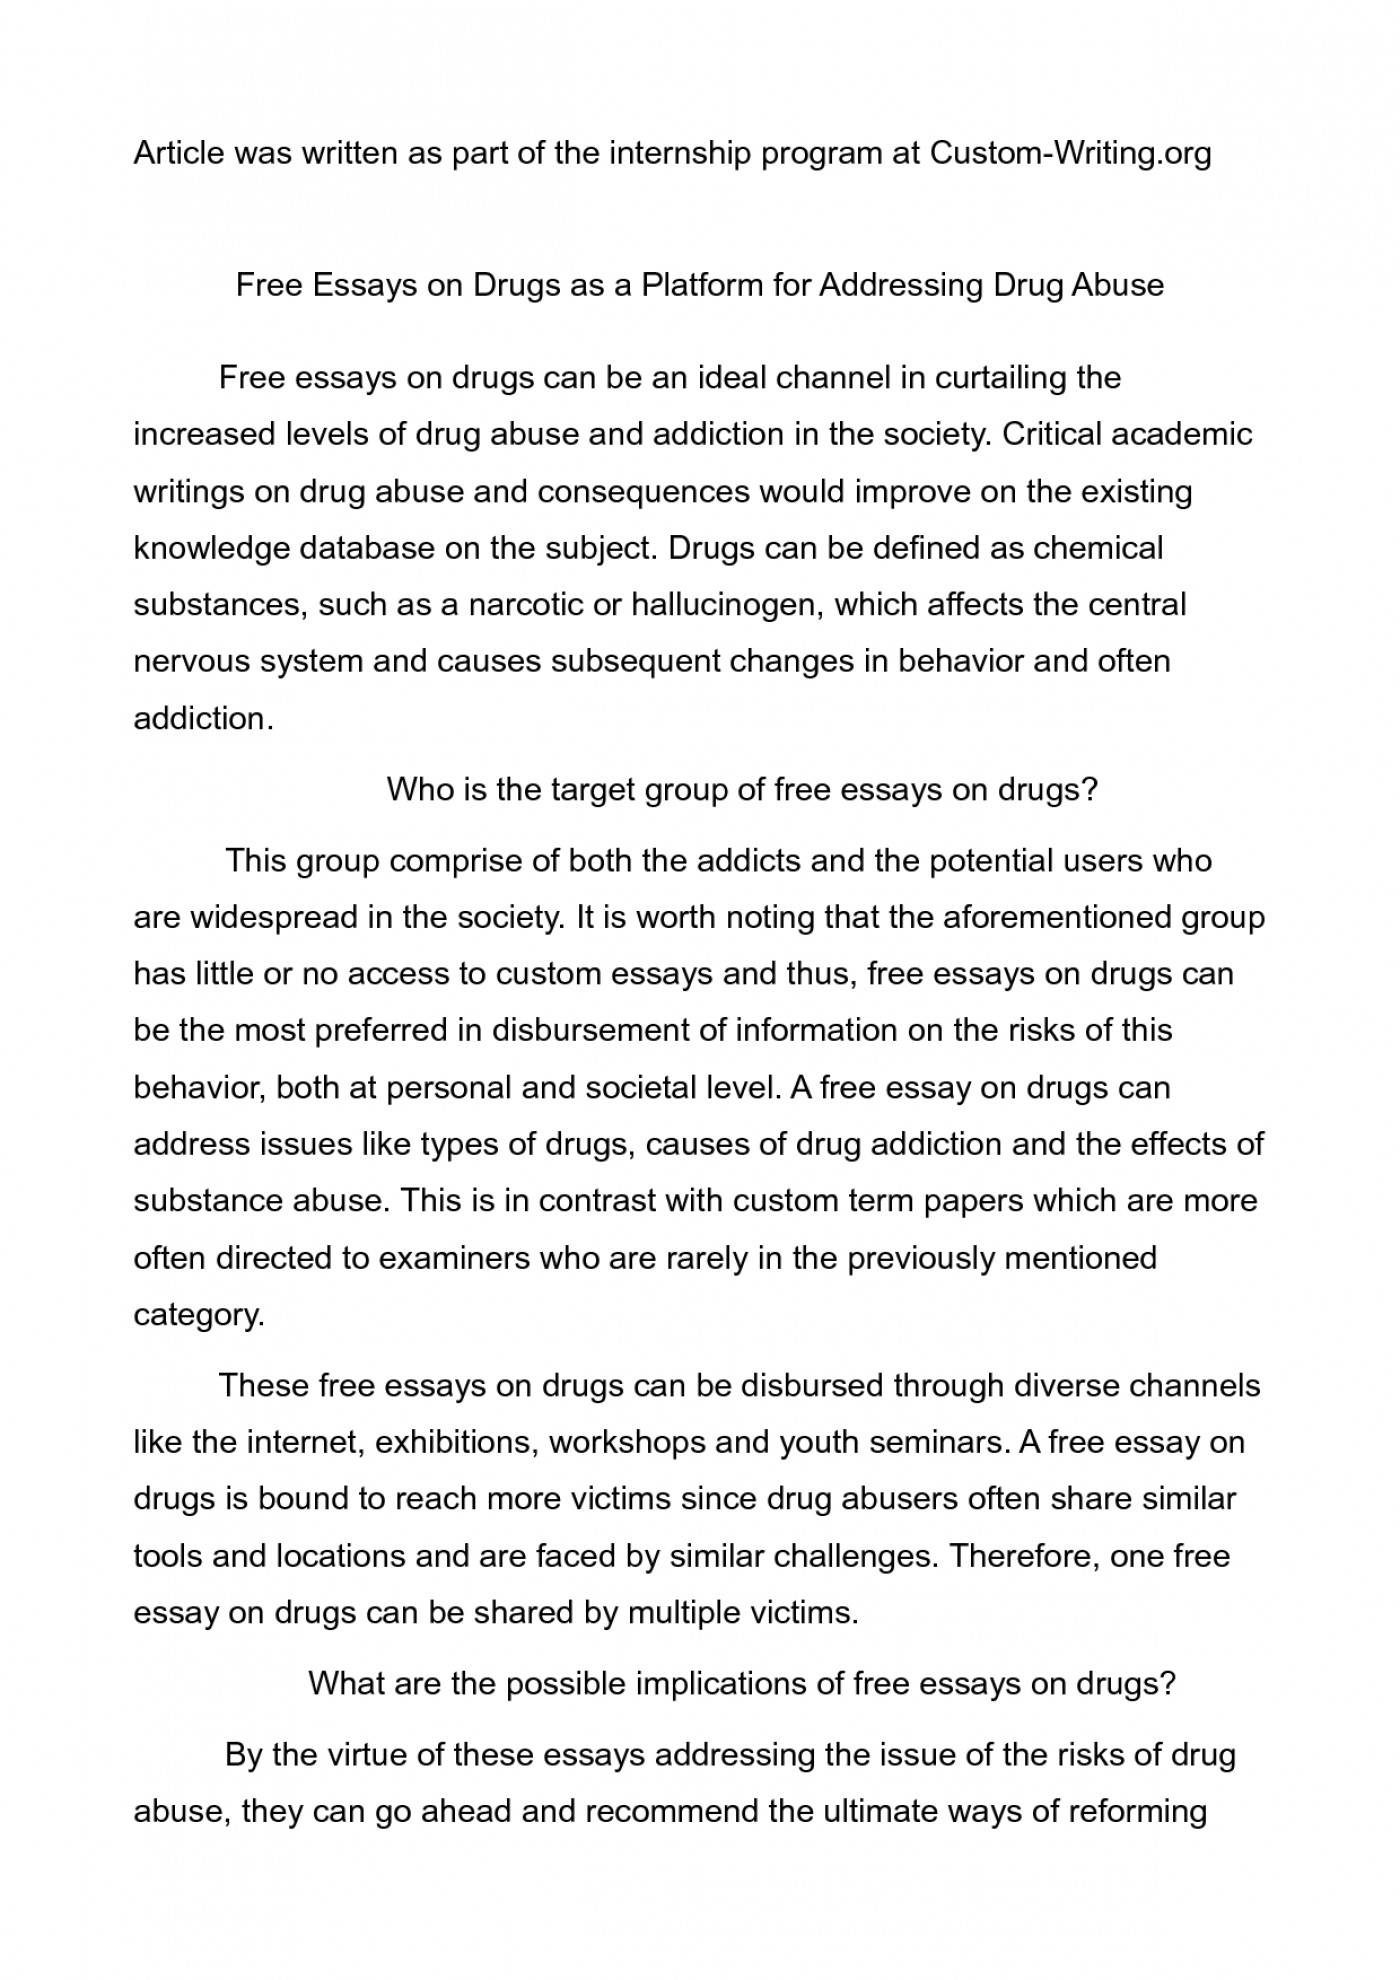 009 Argumentative Essay About Drugs Amazing Template Sample 6th Grade Conclusion 1400